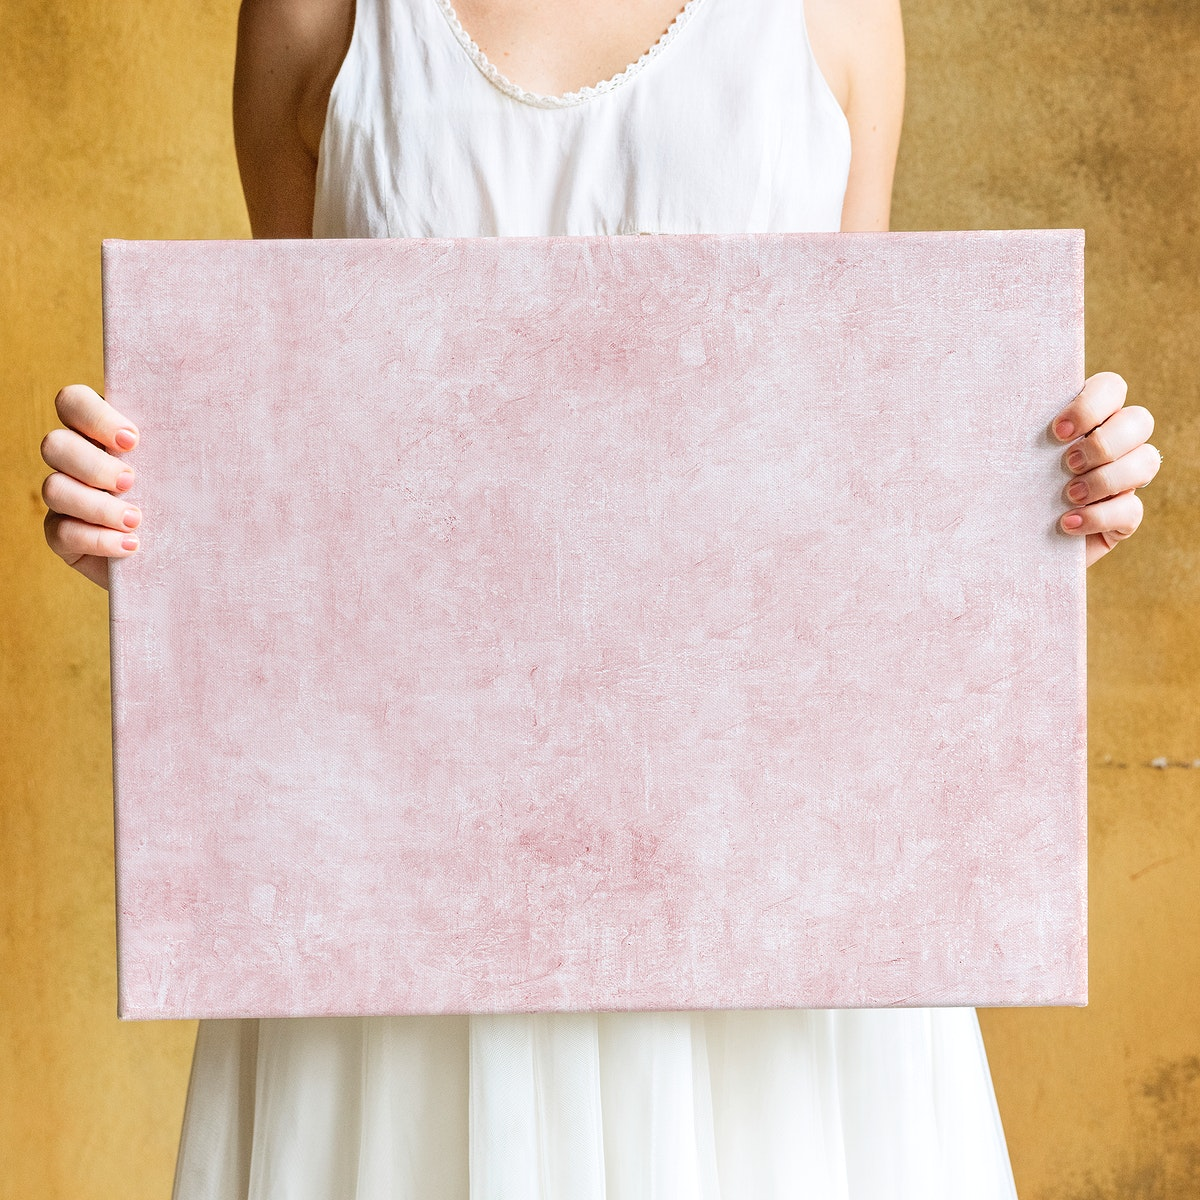 Woman showing a blank canvas mockup